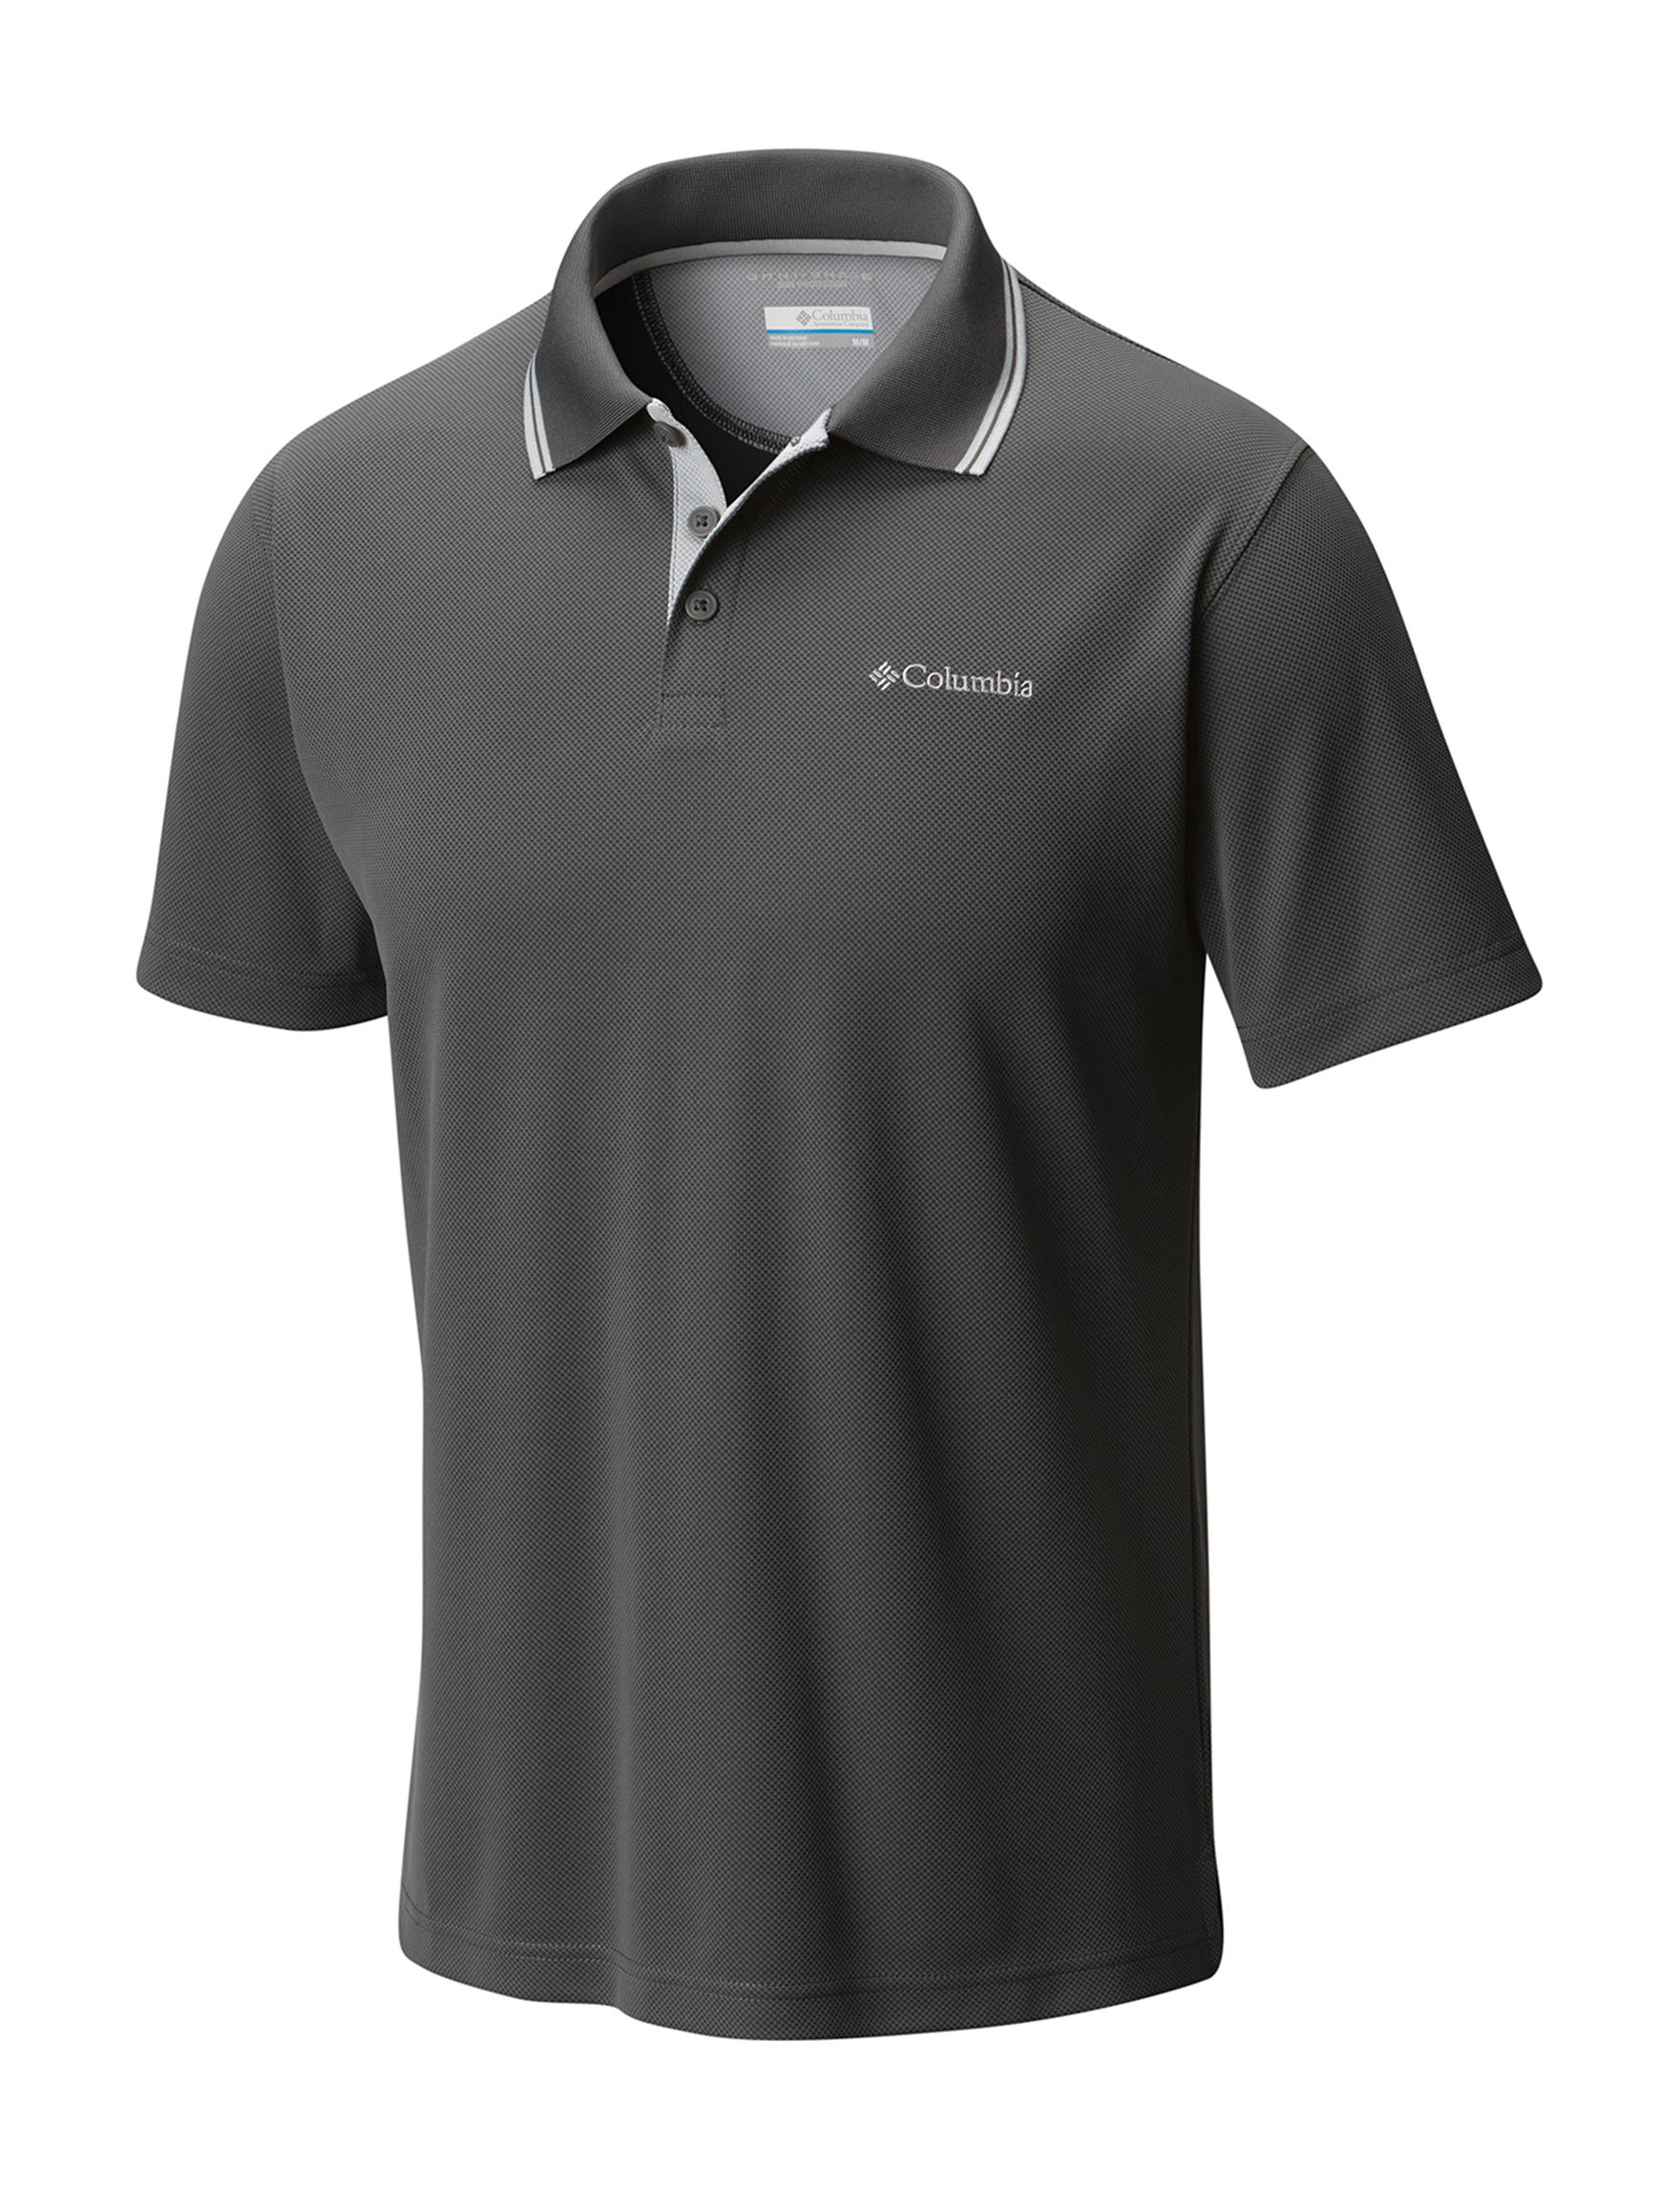 Columbia Grill Polos